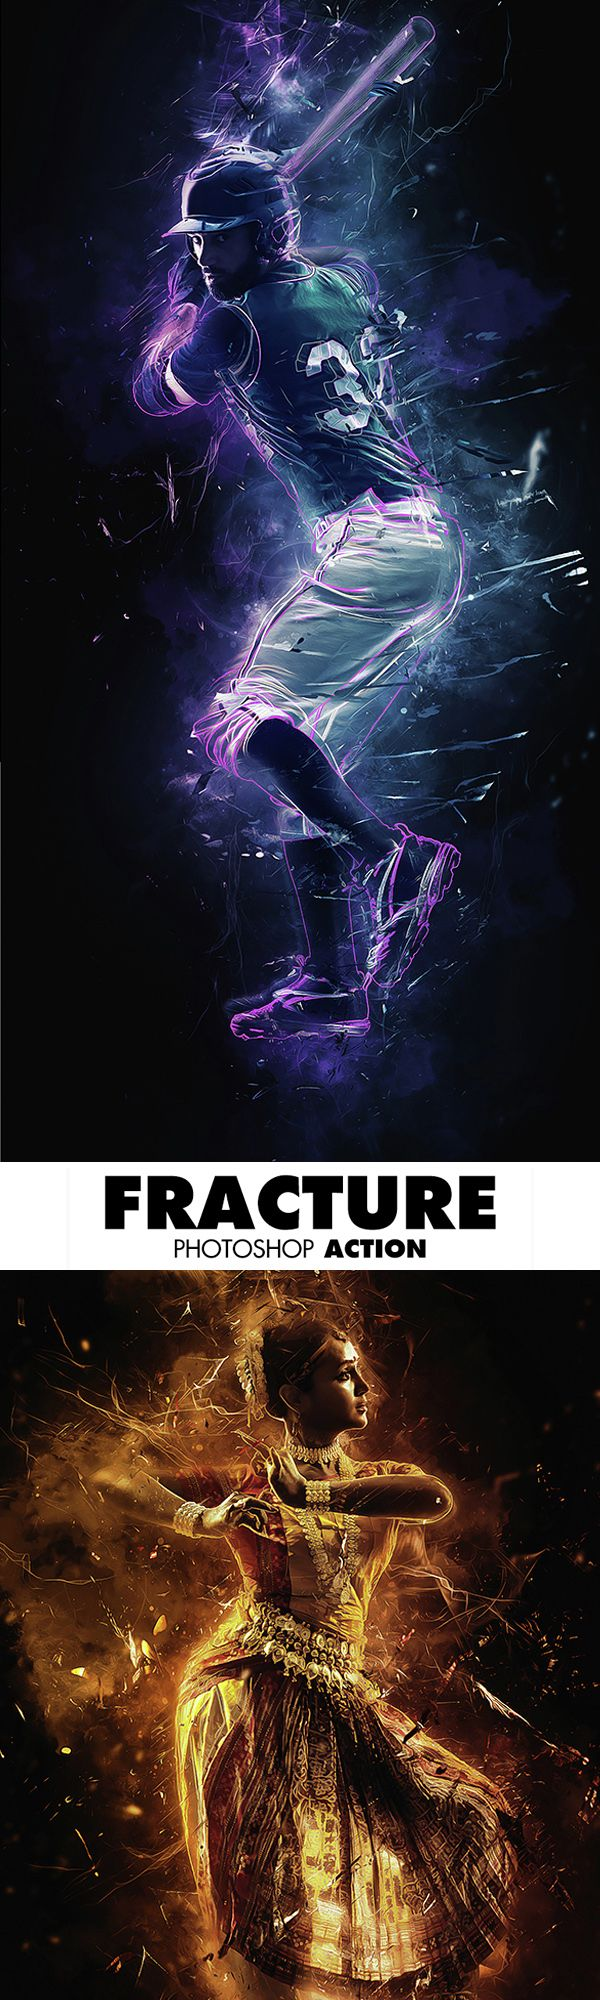 Fracture Photoshop Action #bestactions #photoeffect #photography #photoshopaction